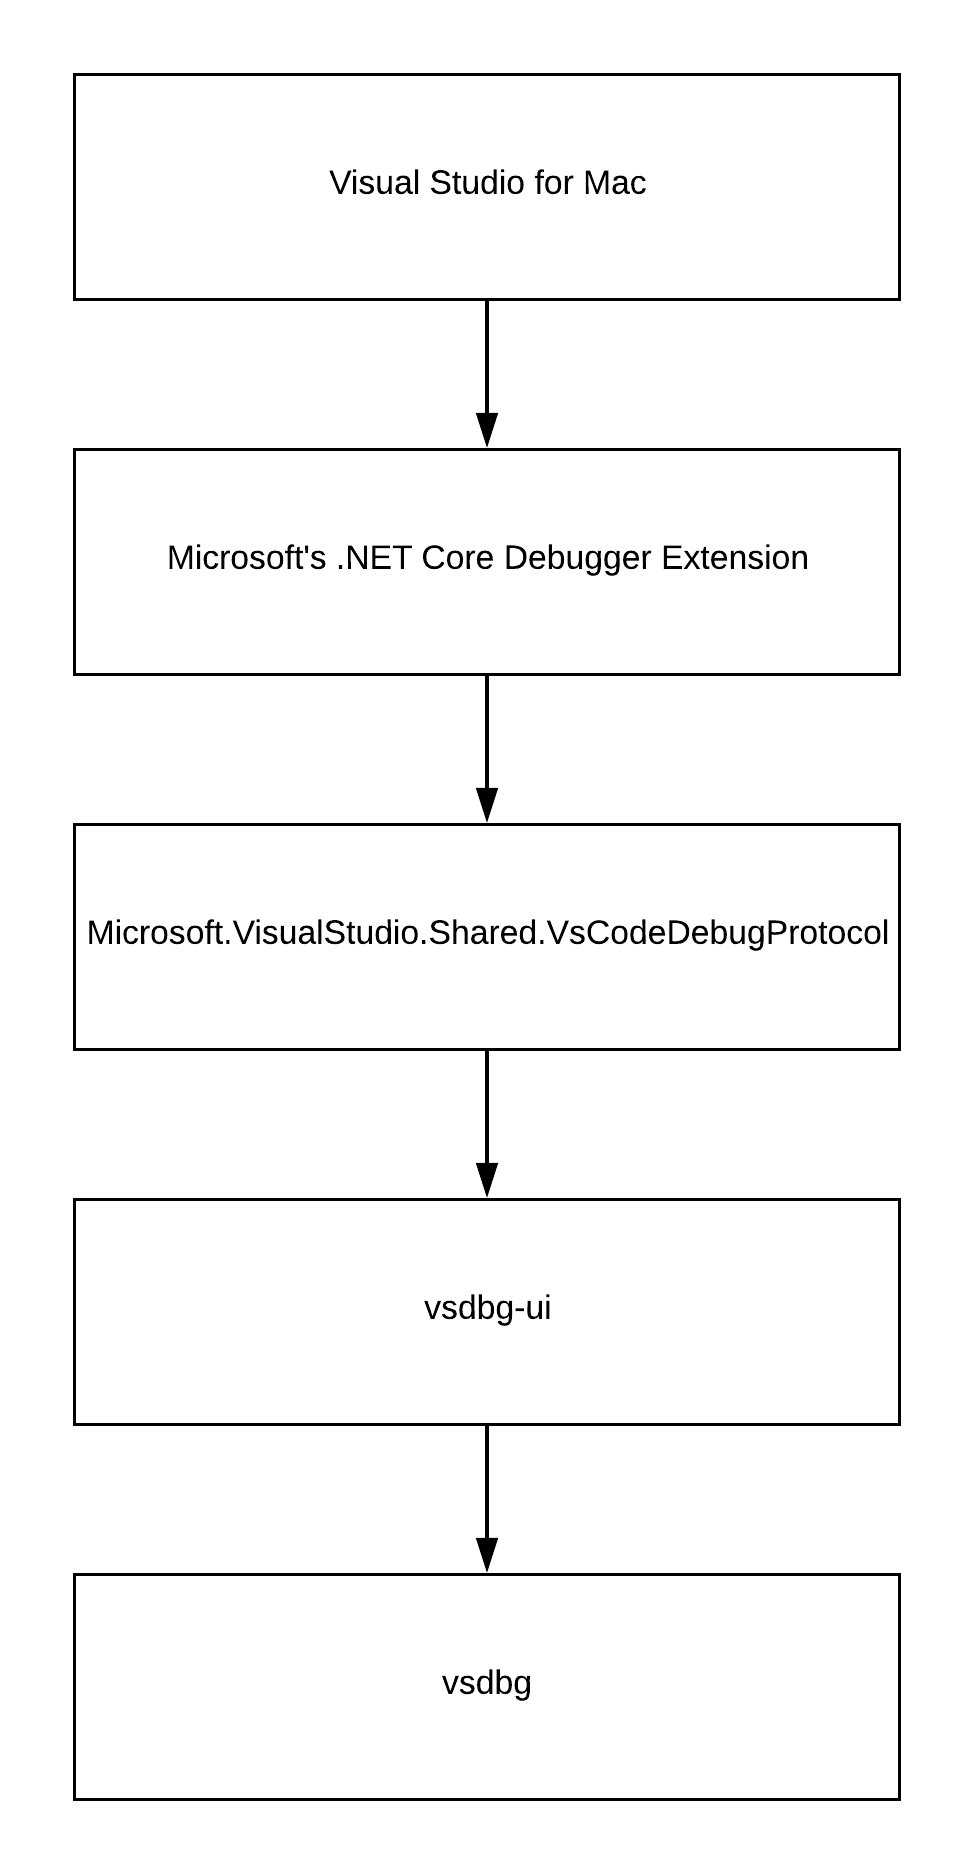 Samsung  NET Core Debugger and MonoDevelop - The Half-Blood